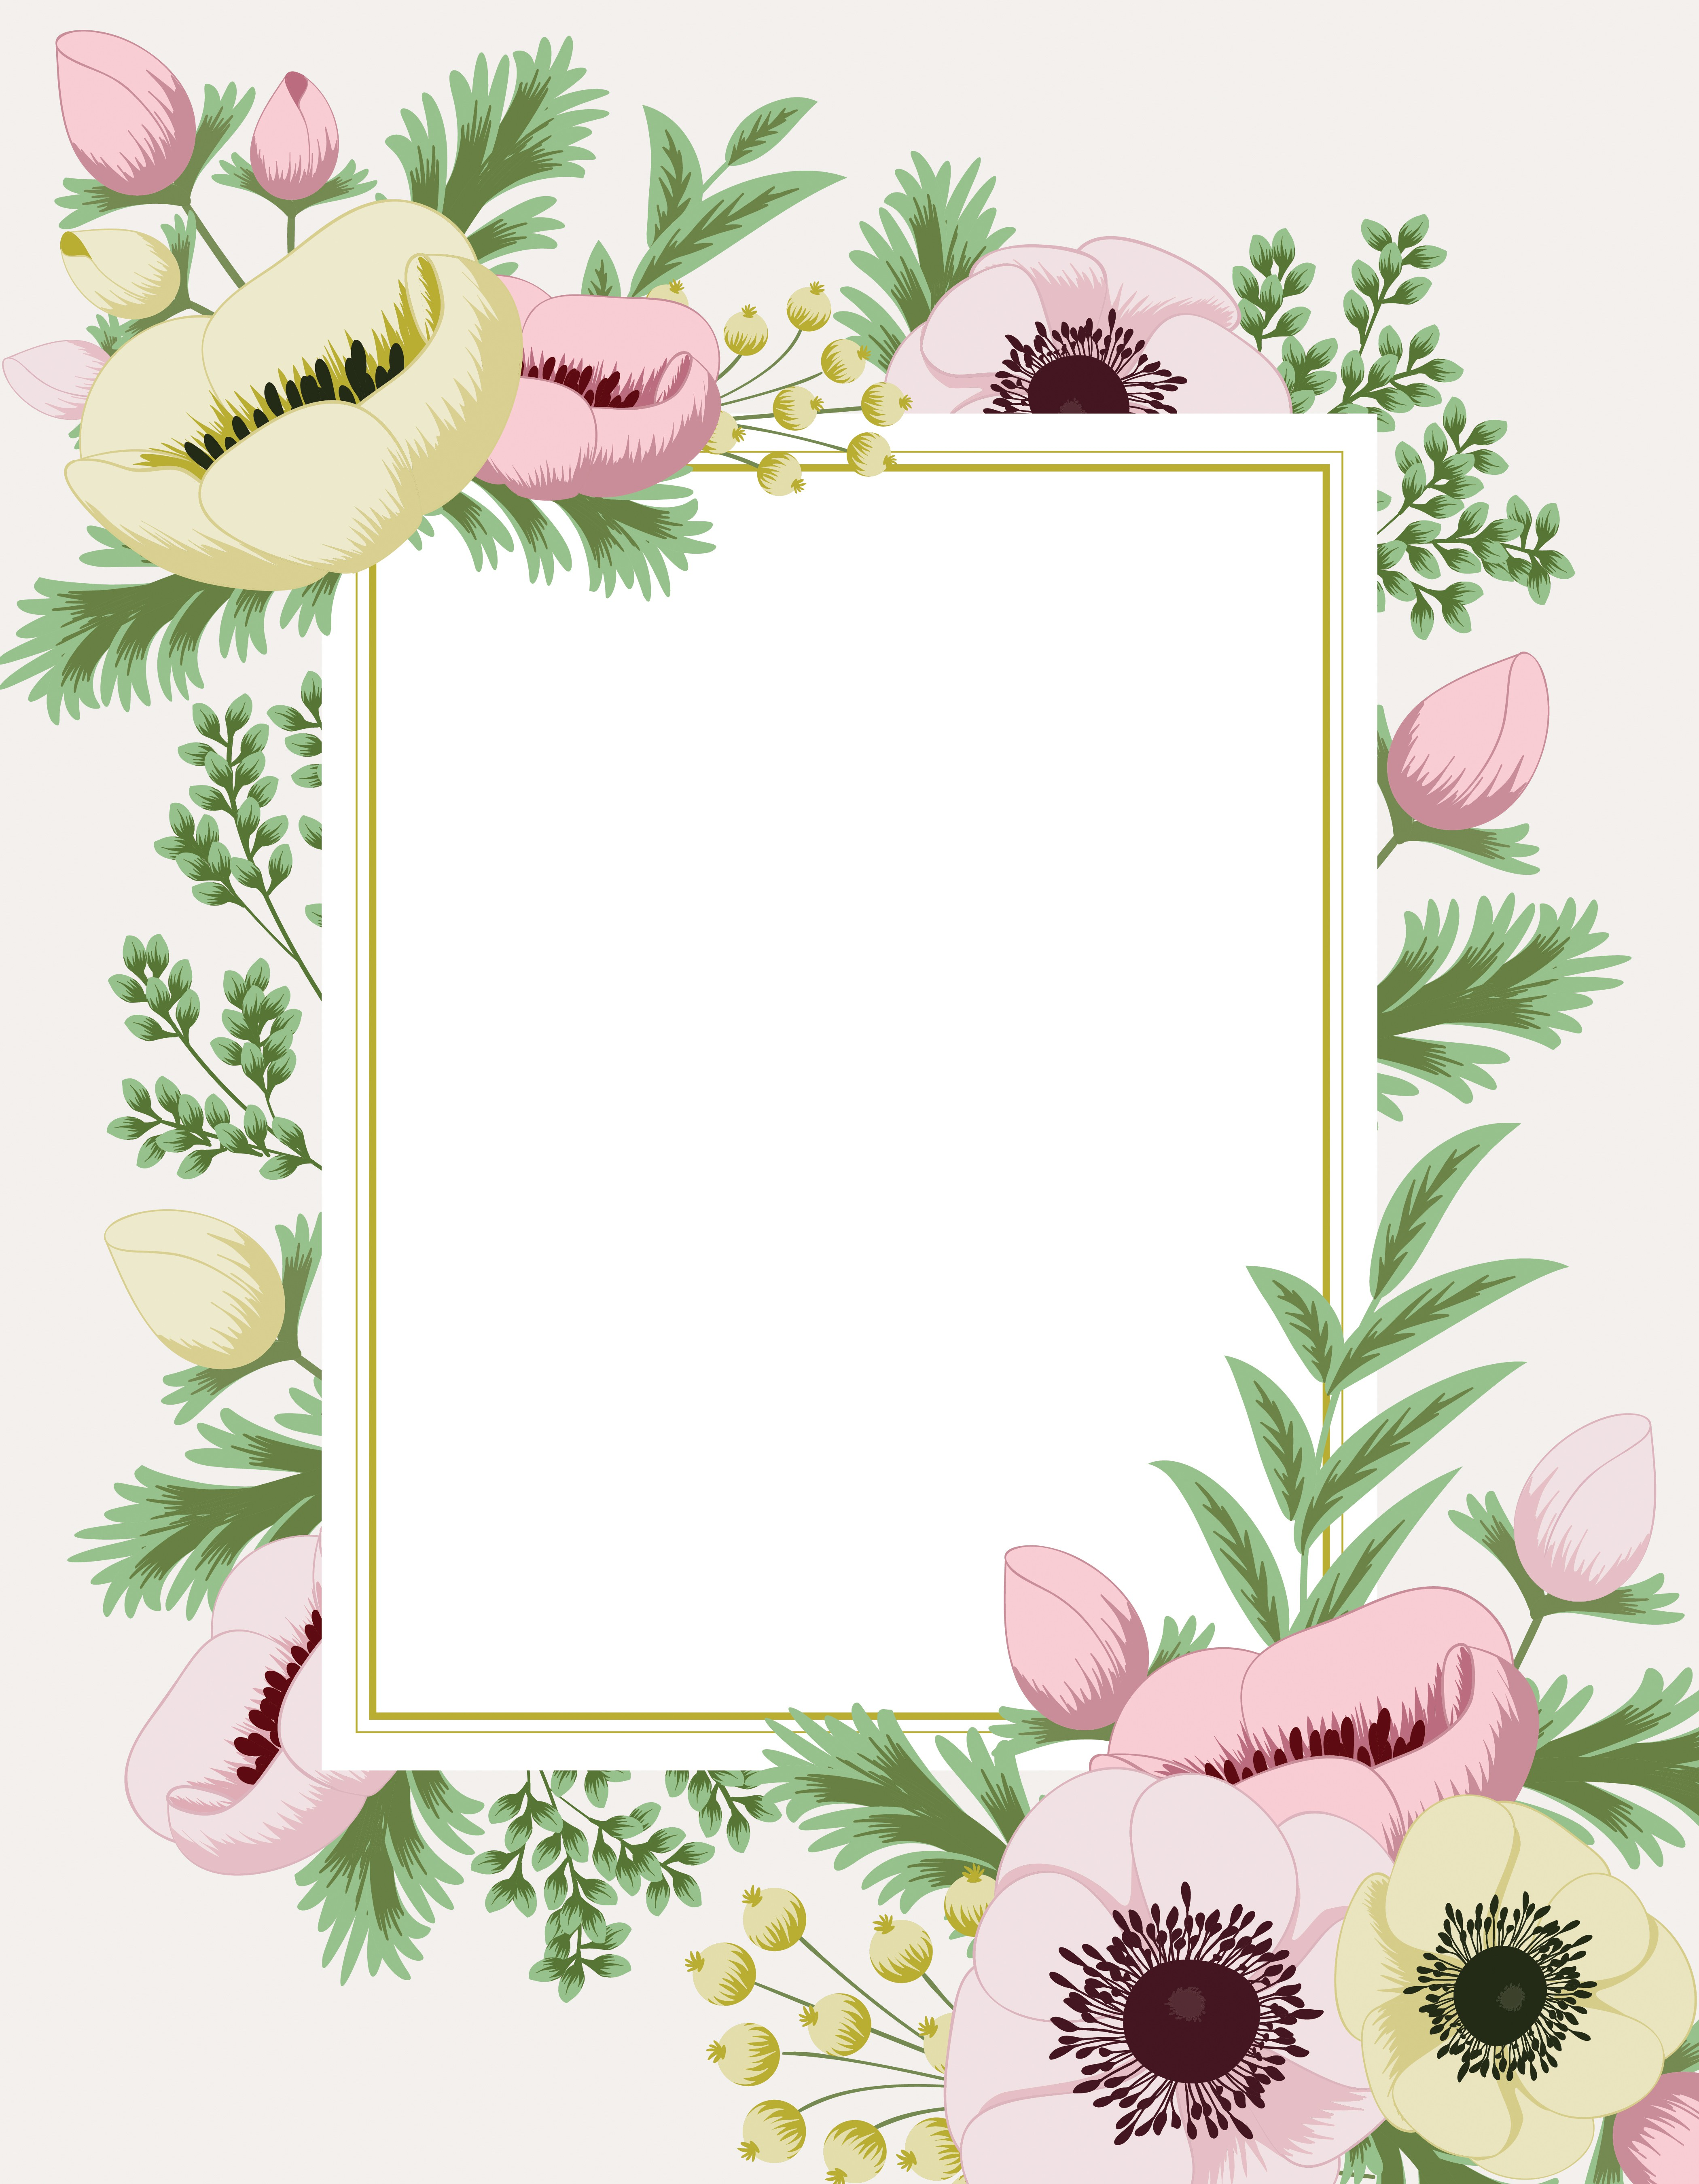 Floral Patterns for Greeting Card Entries #71 and #218